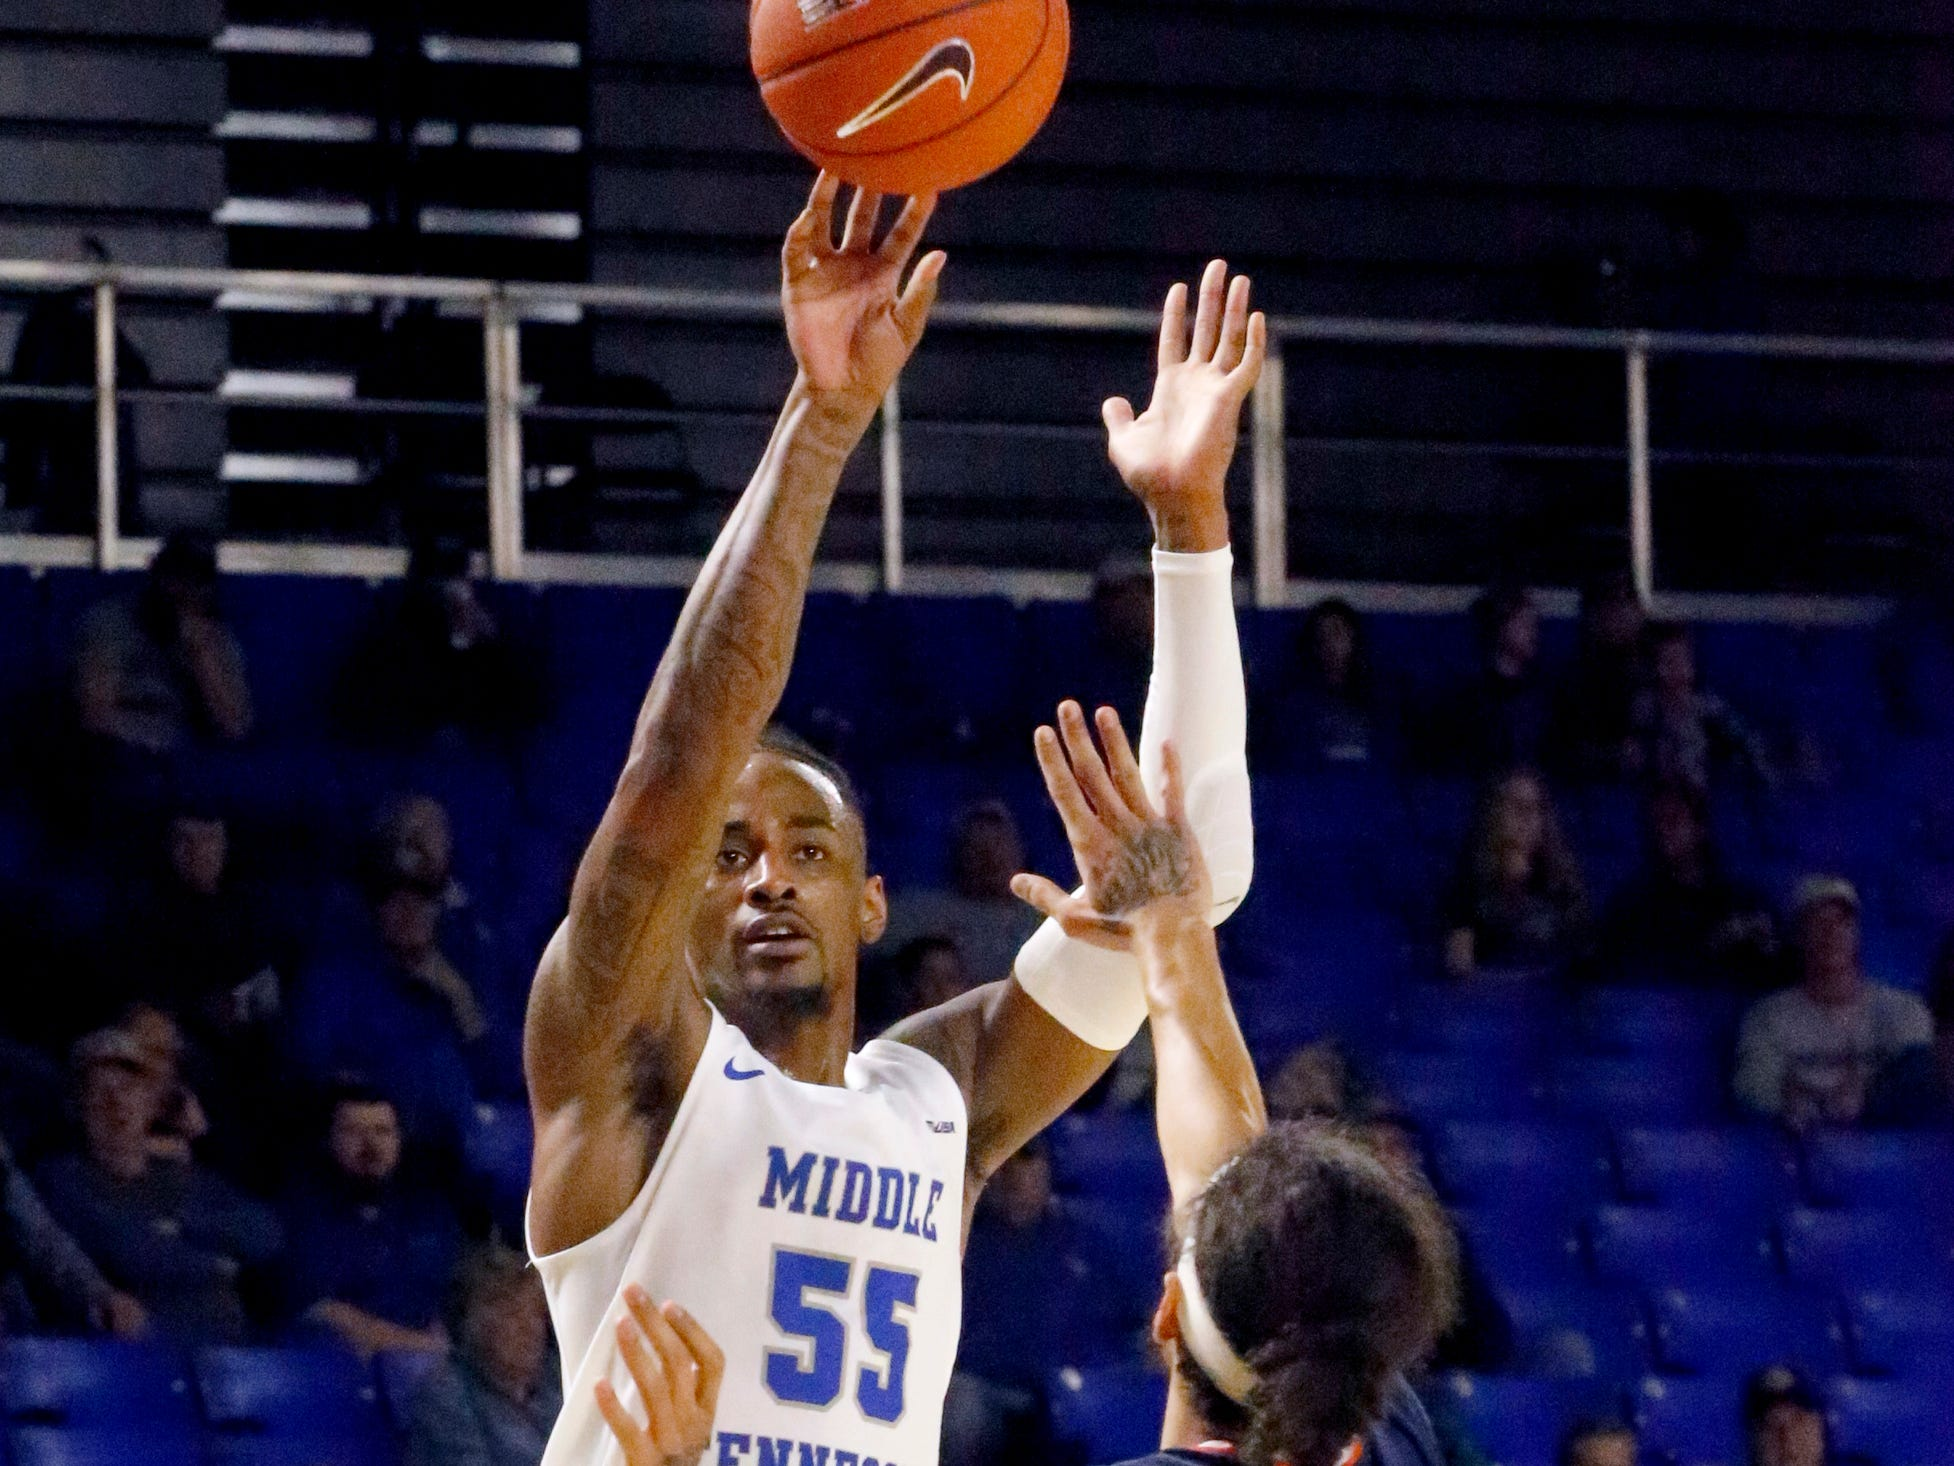 MTSU's guard Antonio Green (55) goes for a three point basket as UTSA's guard Jhivvan Jackson (2) guards him on Thursday Jan. 17, 2019.